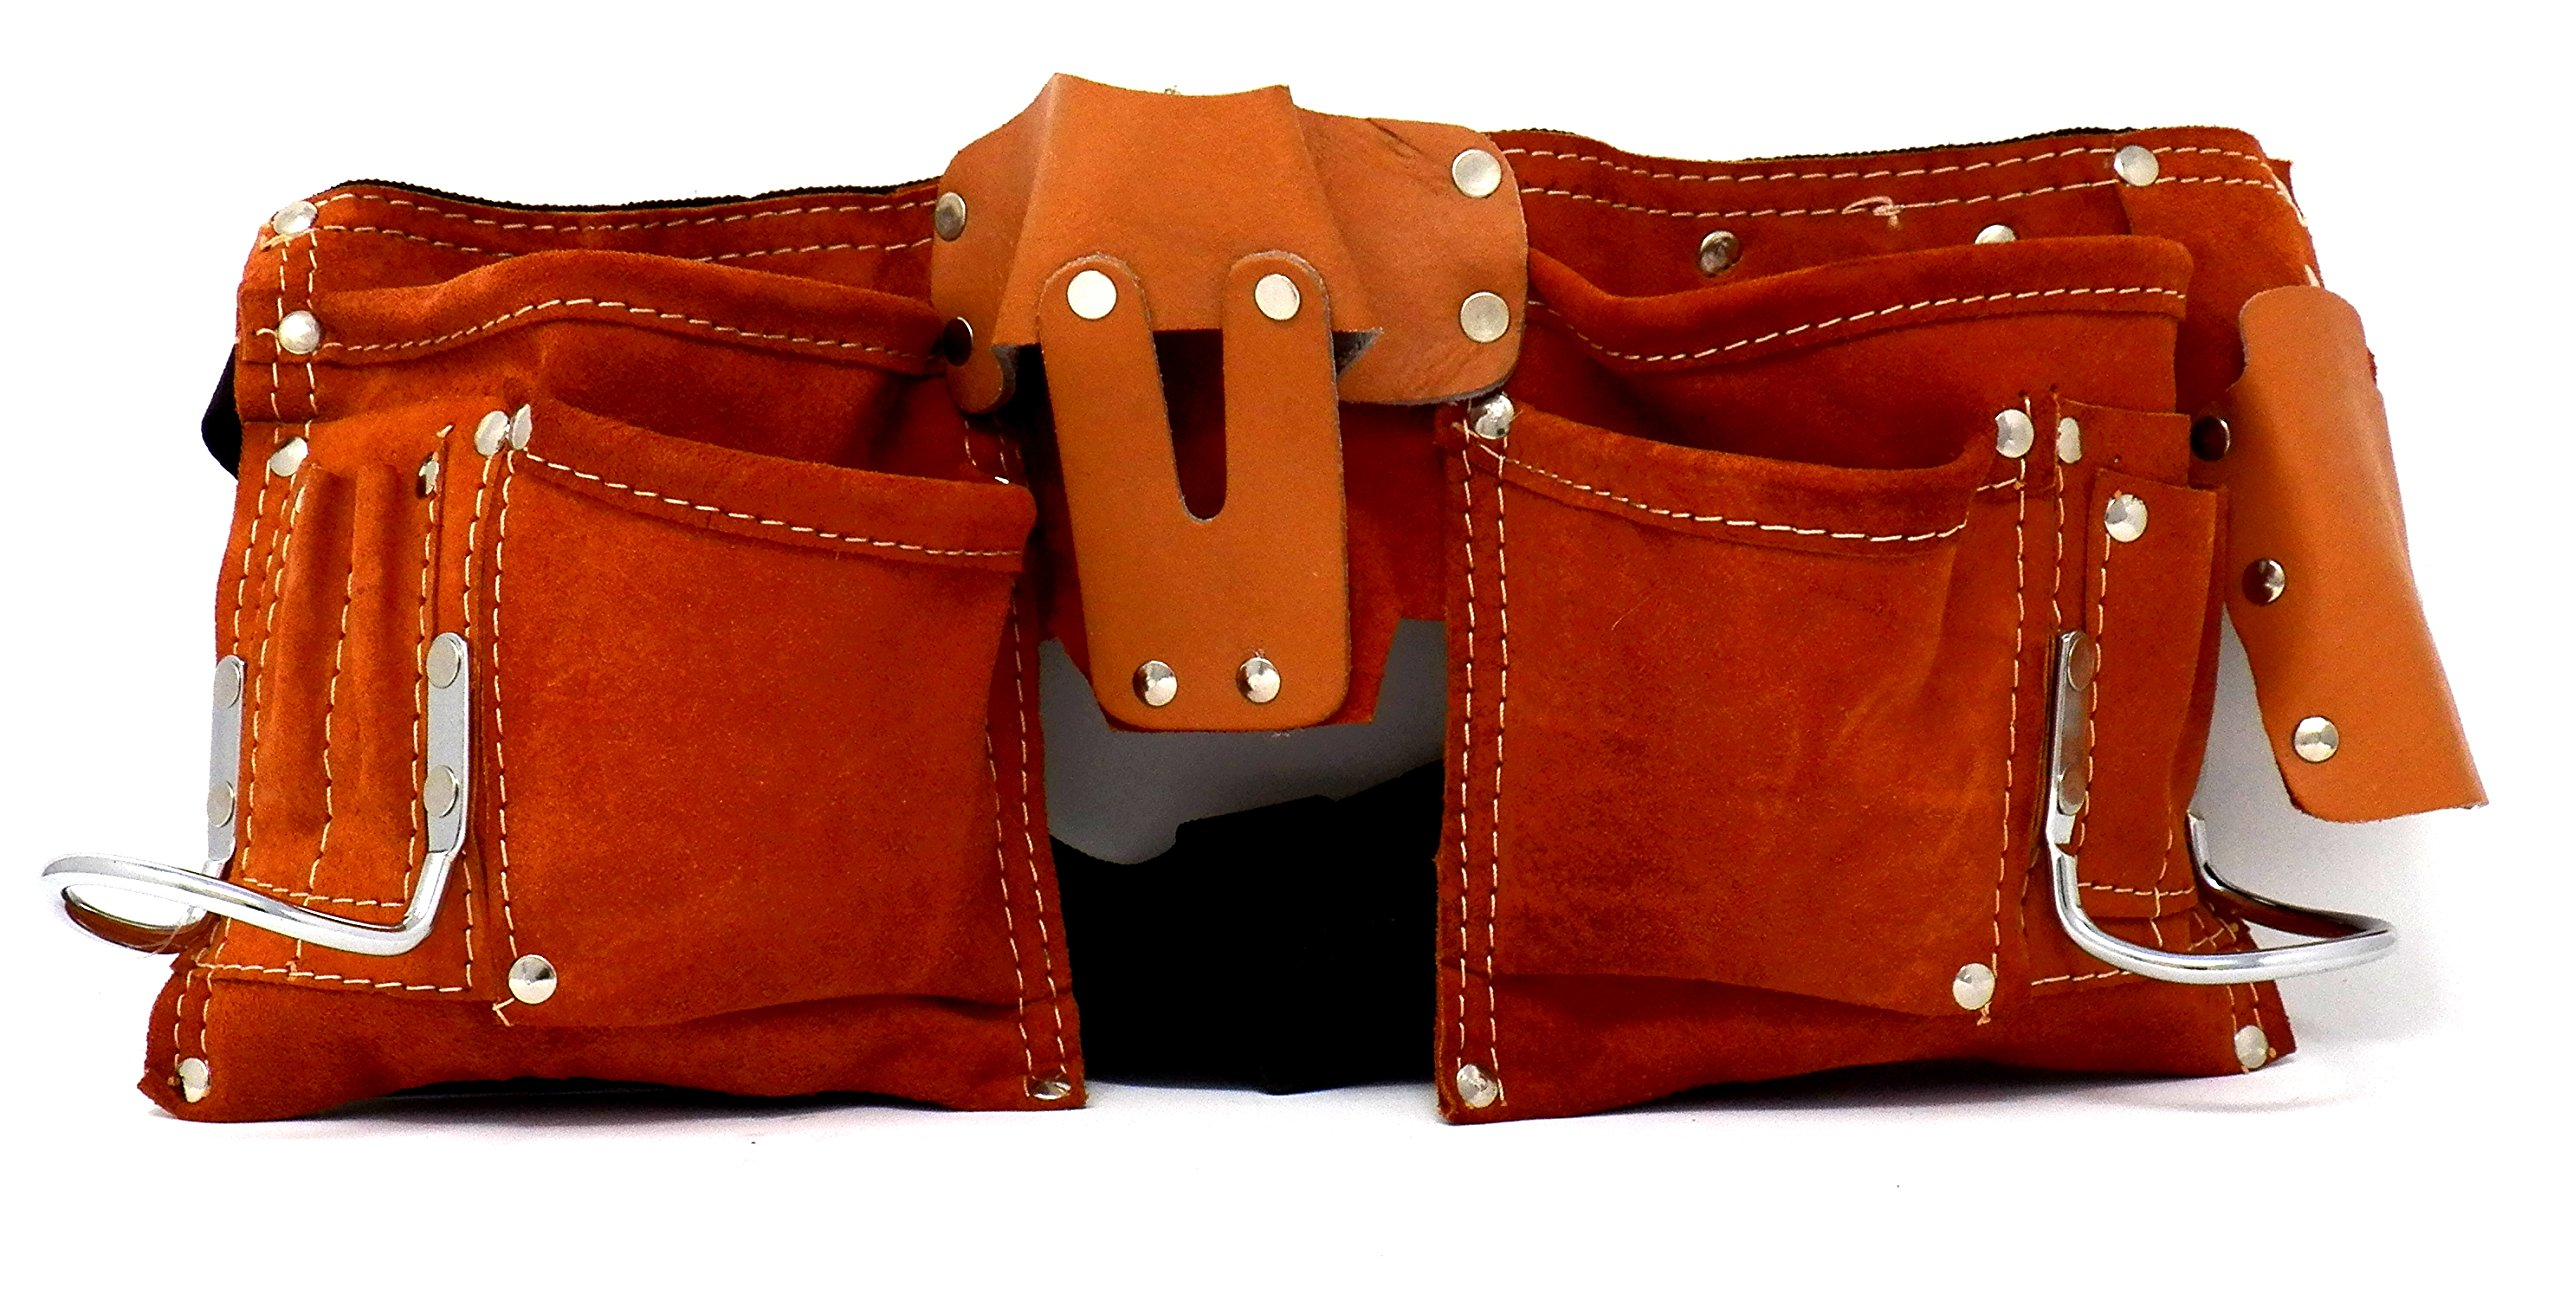 IIT 91112 7 Pocket Leather Tool belt, Polyweb belt with quick release buckle.